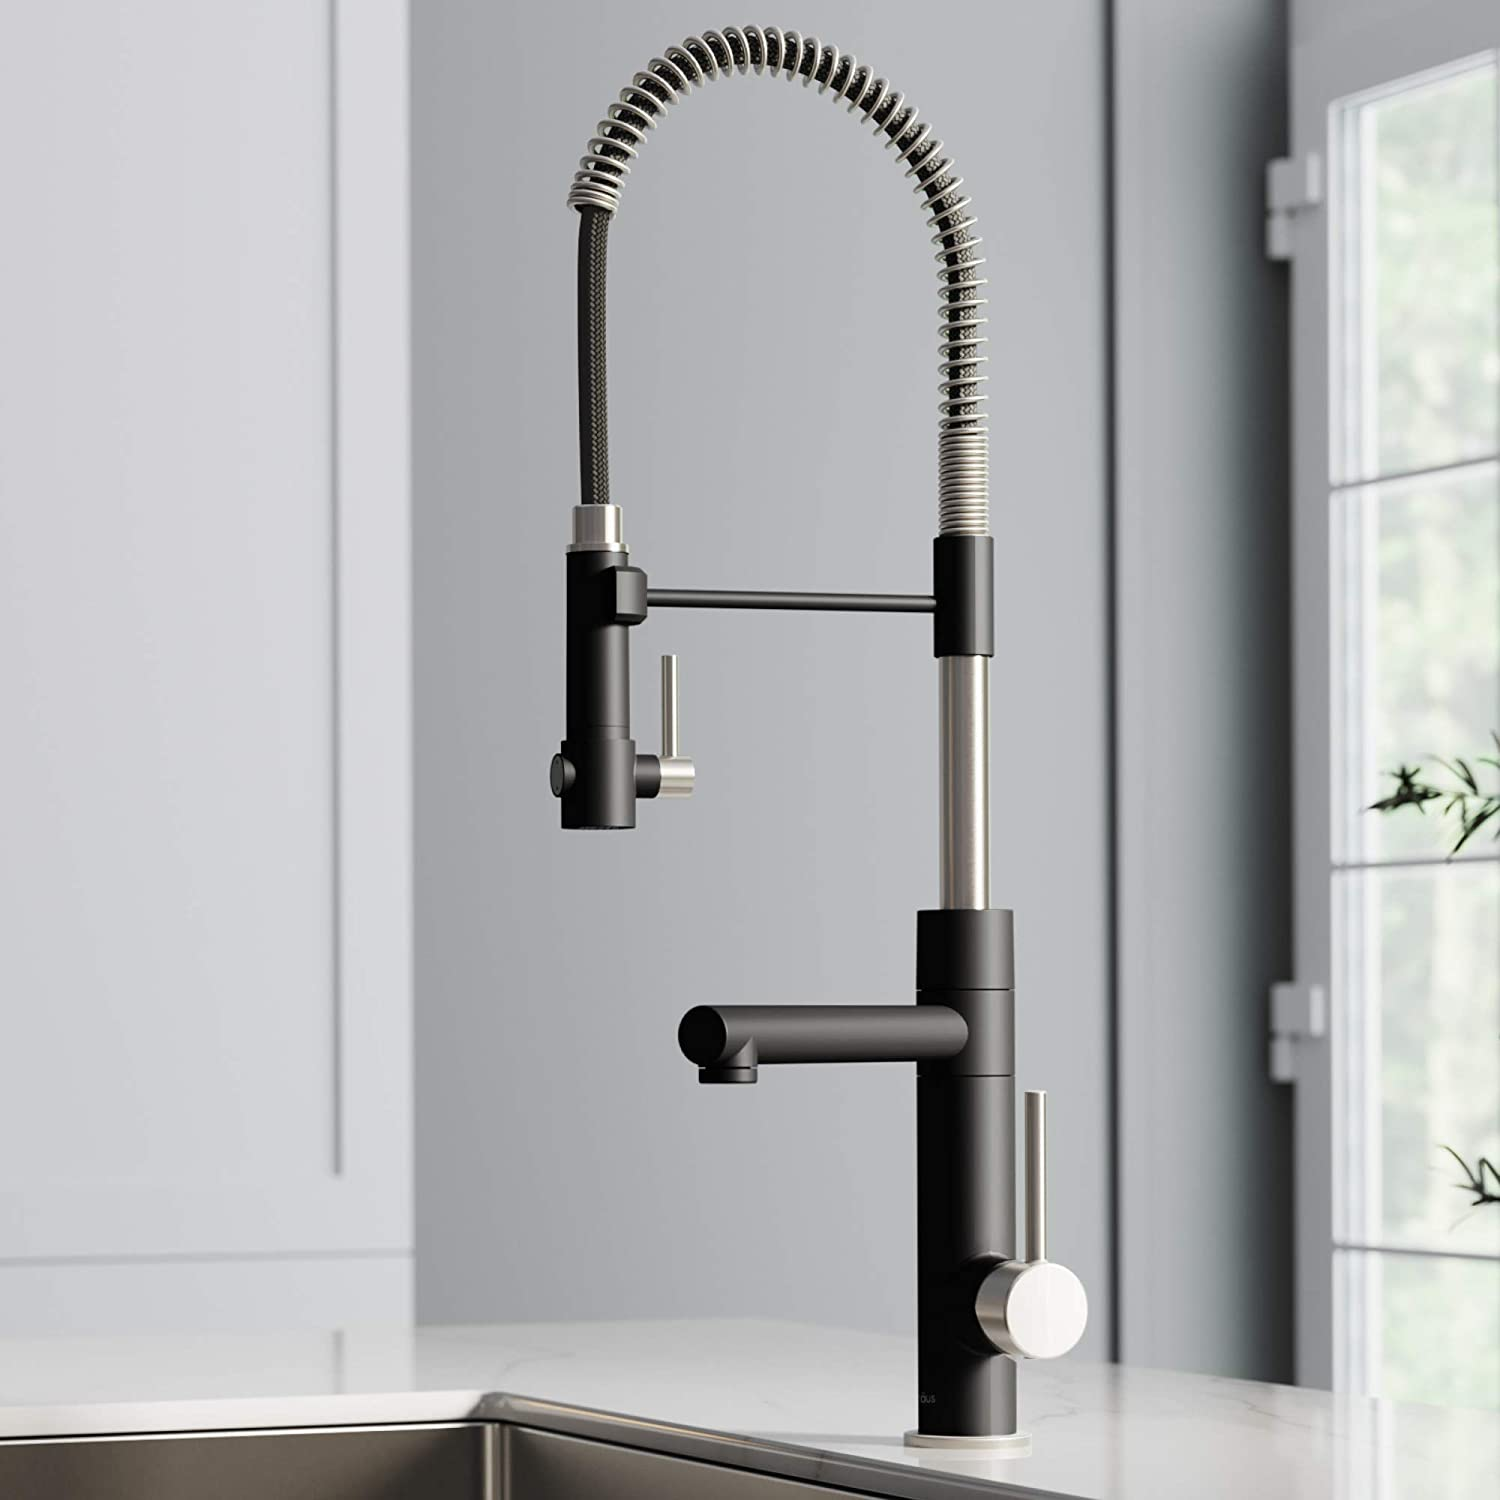 KRAUS New Artec Pro Spot Free Finish 2-Function Commercial Style Pre-Rinse Kitchen Faucet with Pull-Down Spring Spout and Pot Filler, Stainless Steel/Matte Black, KPF-1603SFSMB